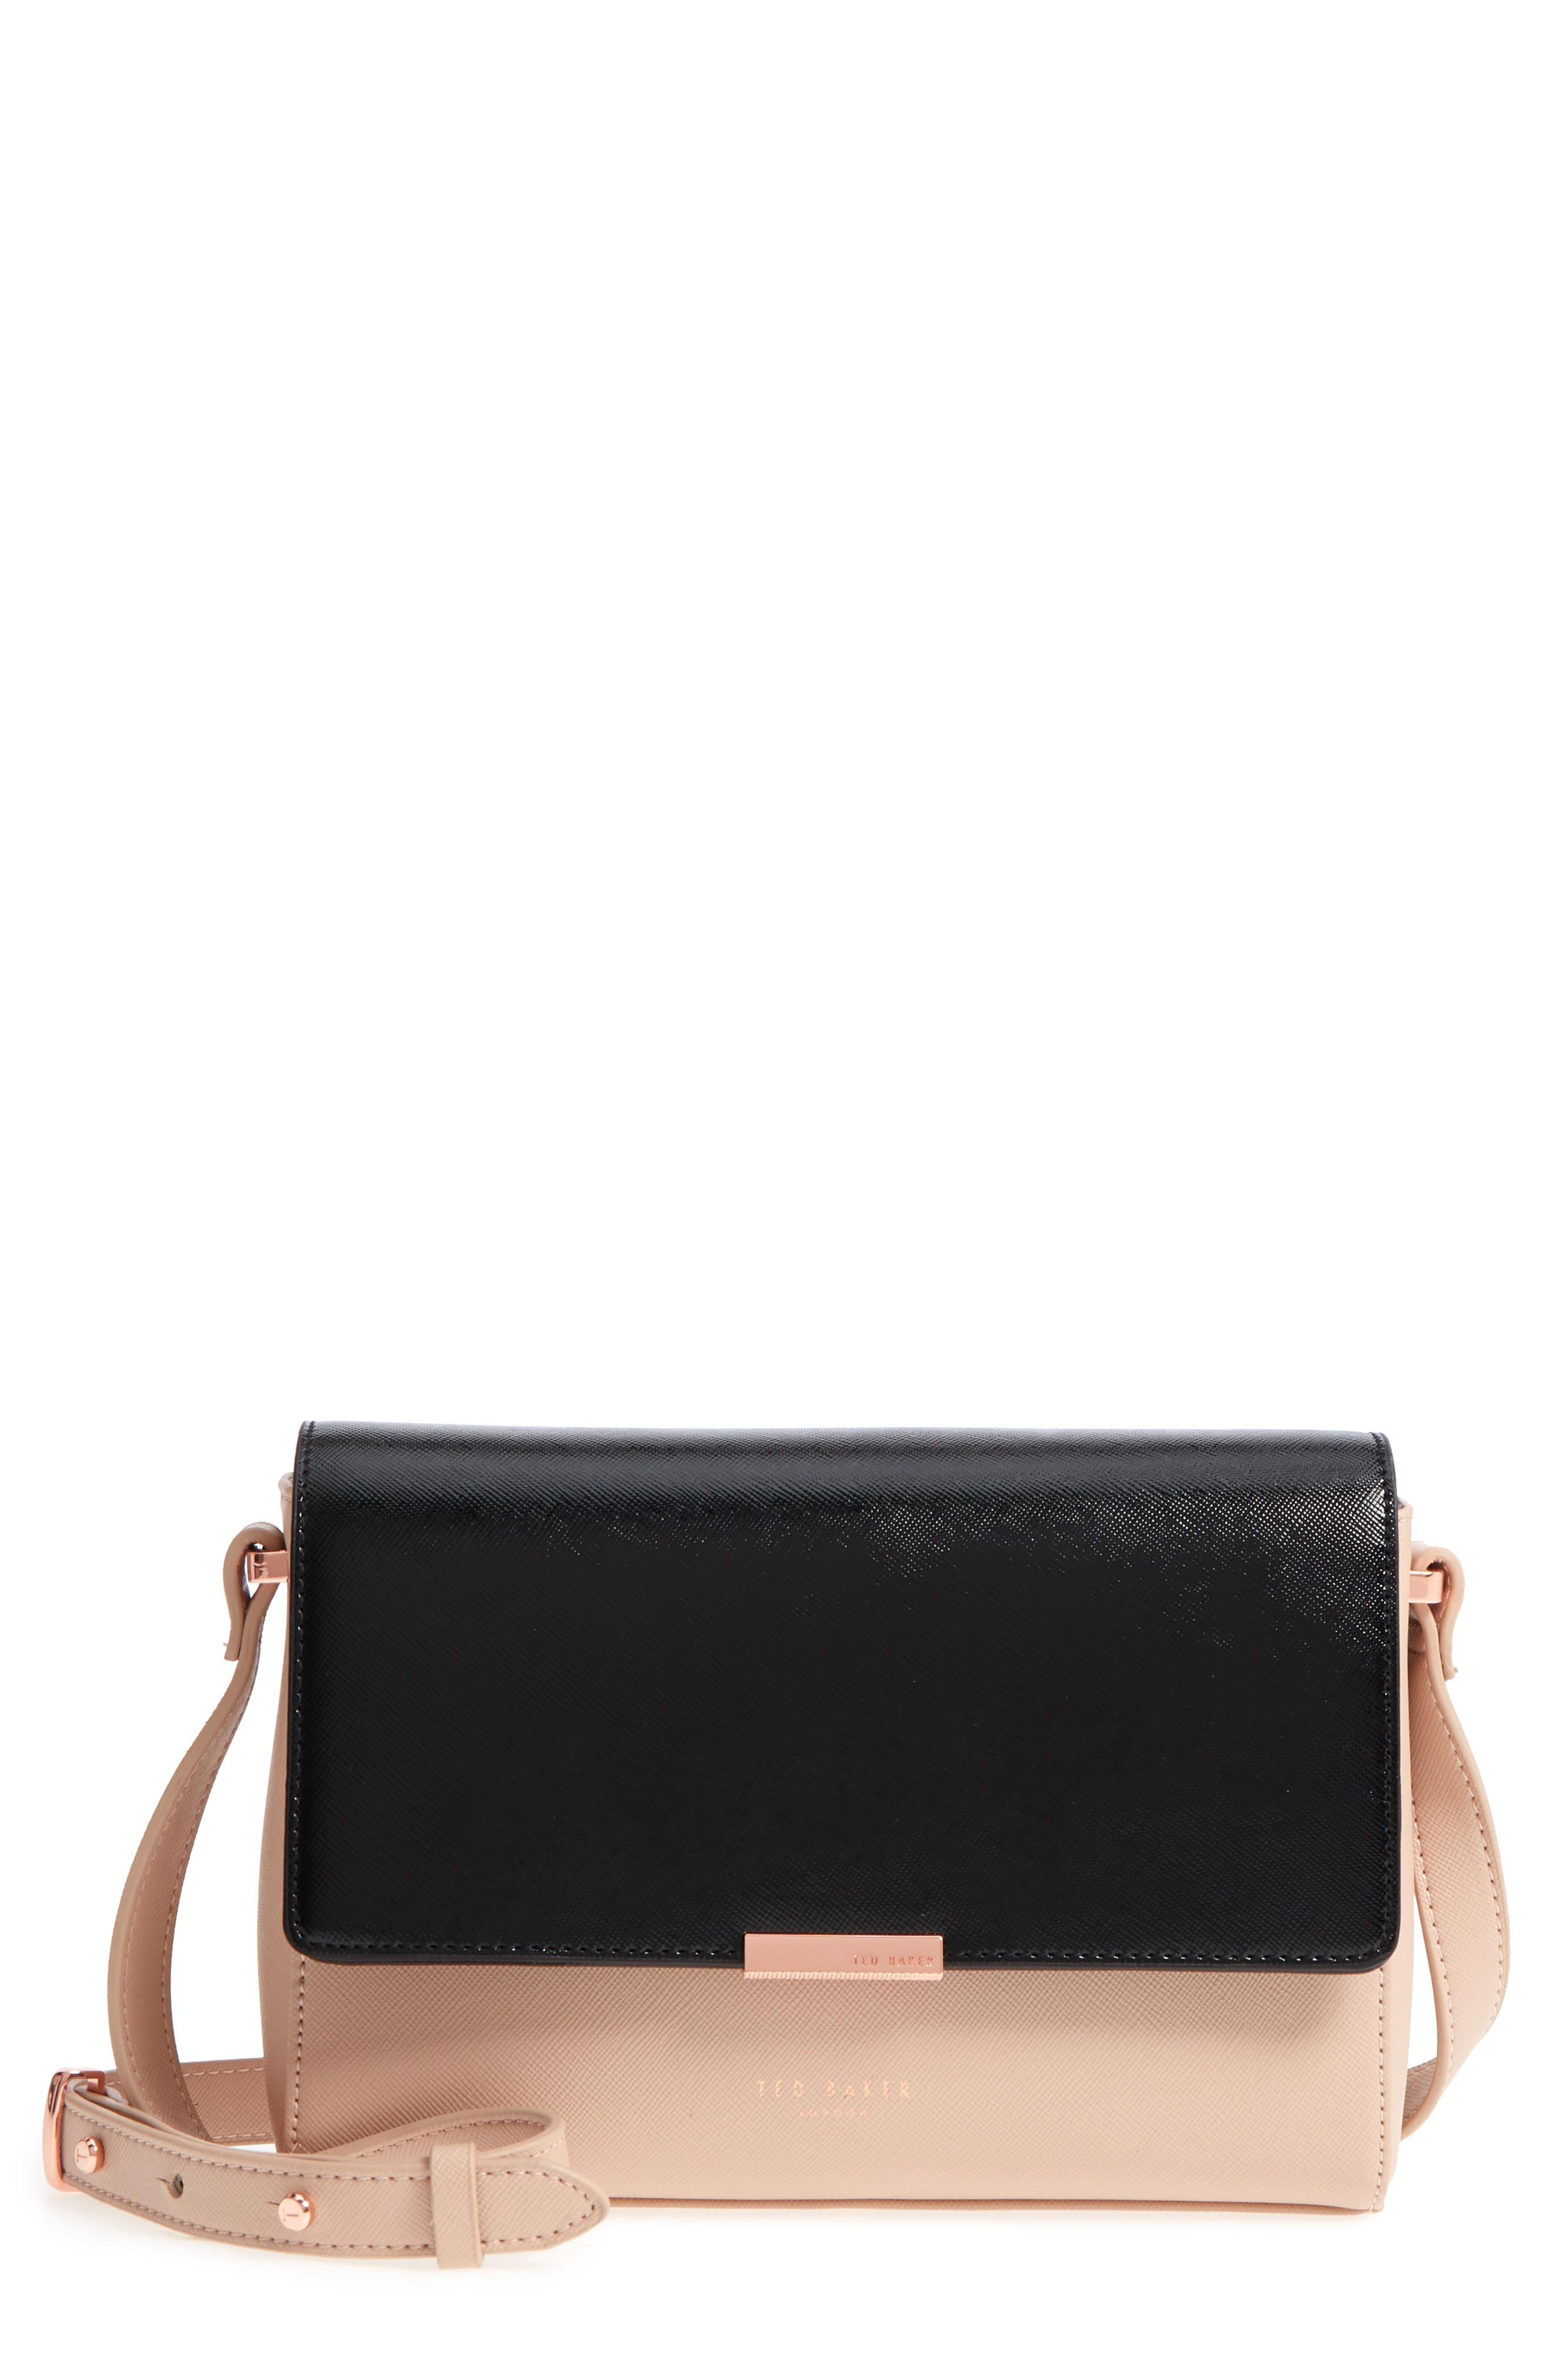 Ted Baker Demonda Faux Leather Crossbody Bag - Beige In Taupe  fe1de3e257316